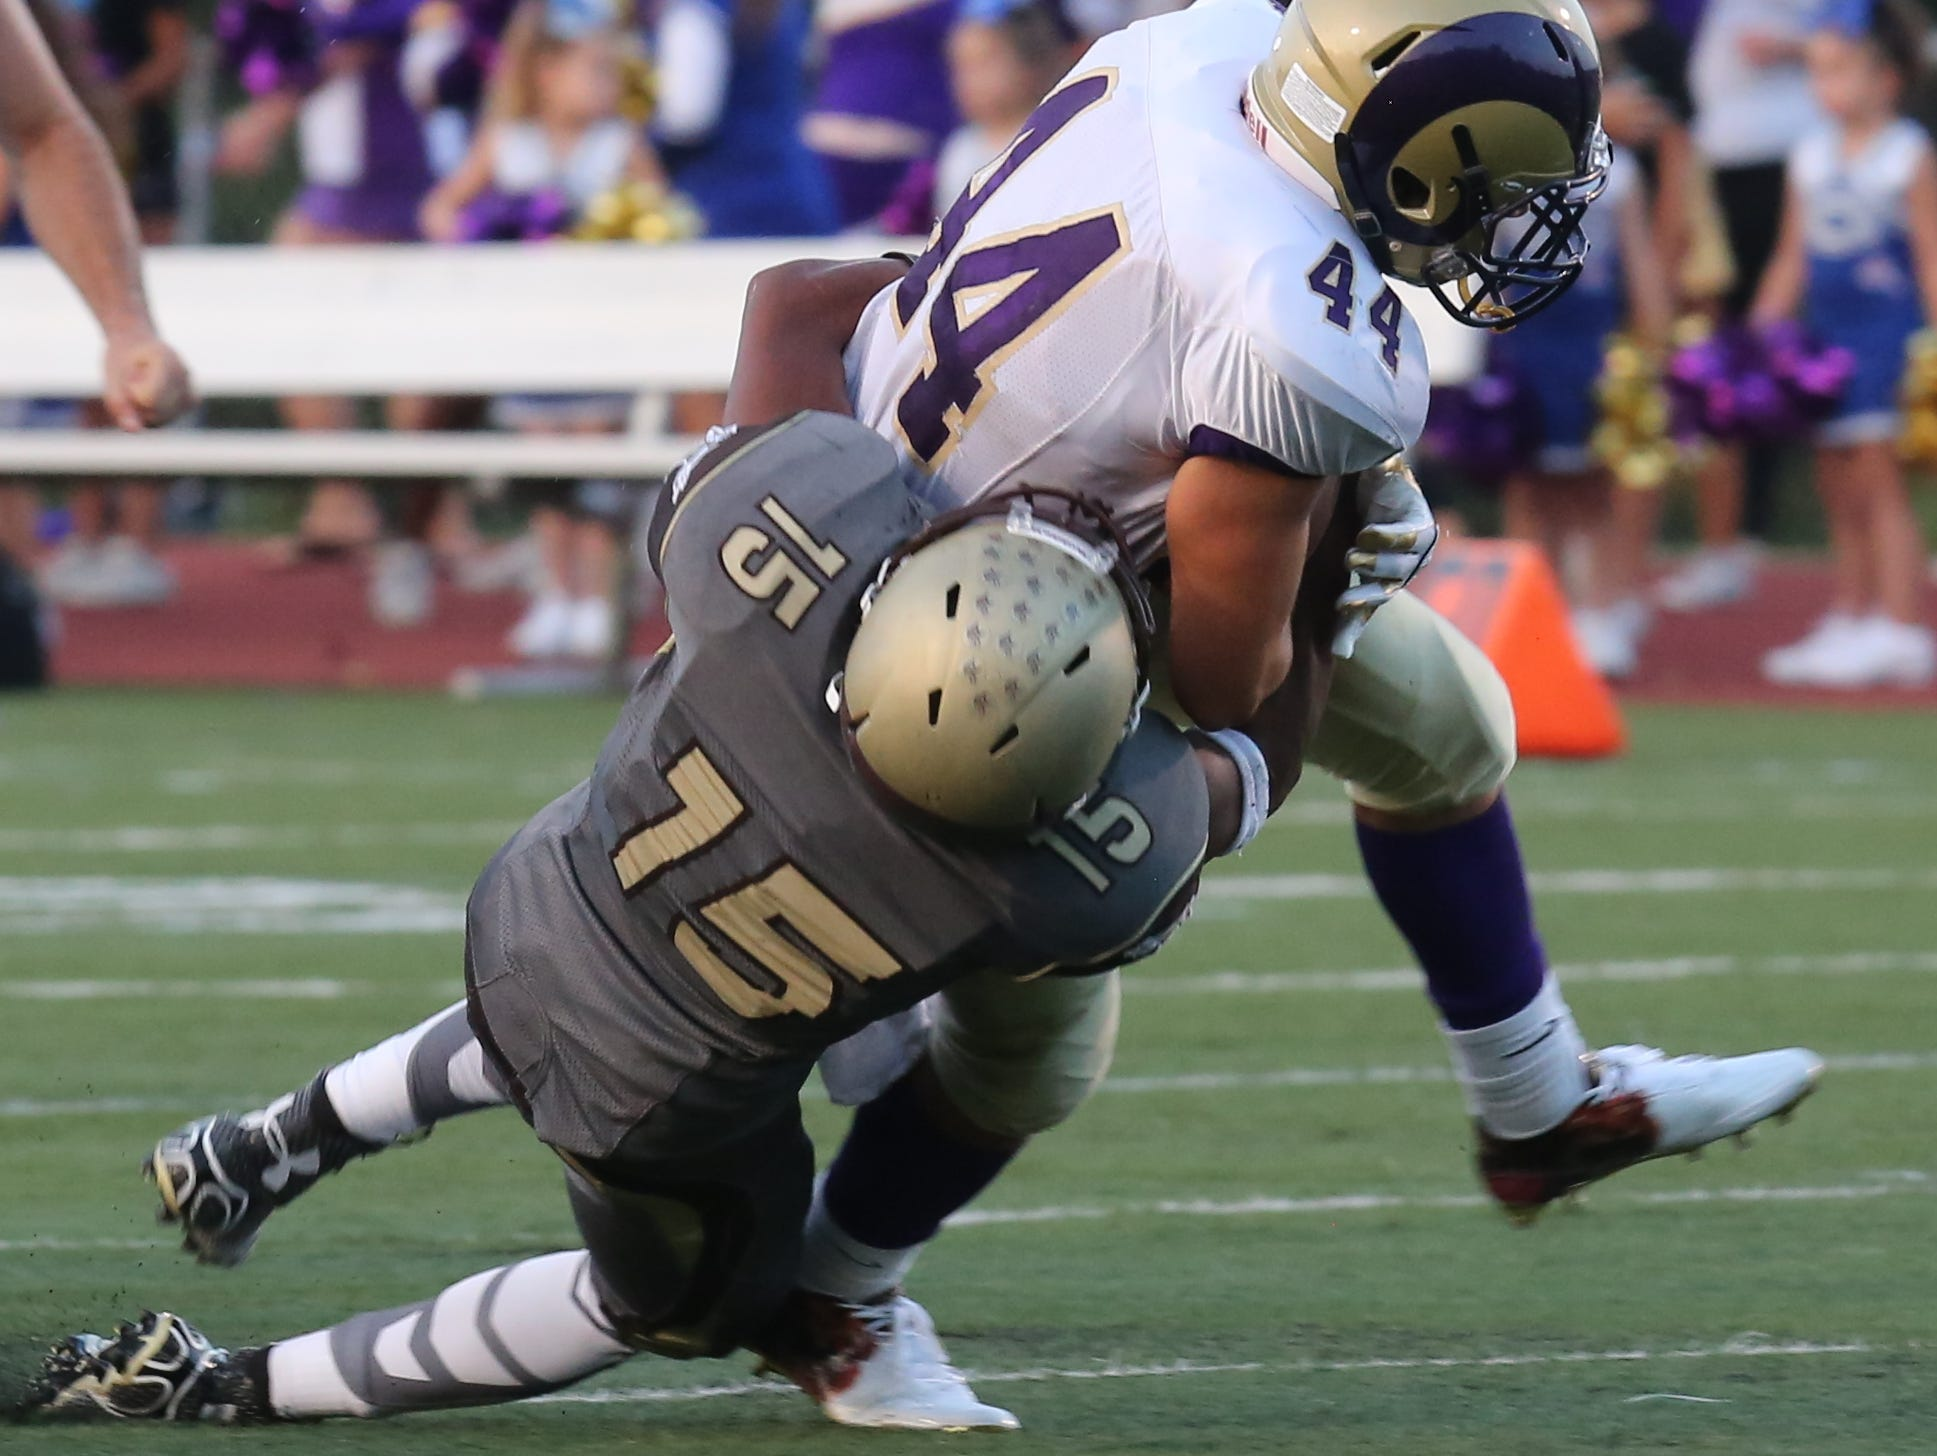 Clarkstown South's August St. Louis (15) tackles Clarkstown North's Michael Porco (44) during game action at Clarkstown South High School in West Nyack Sept. 4, 2015.